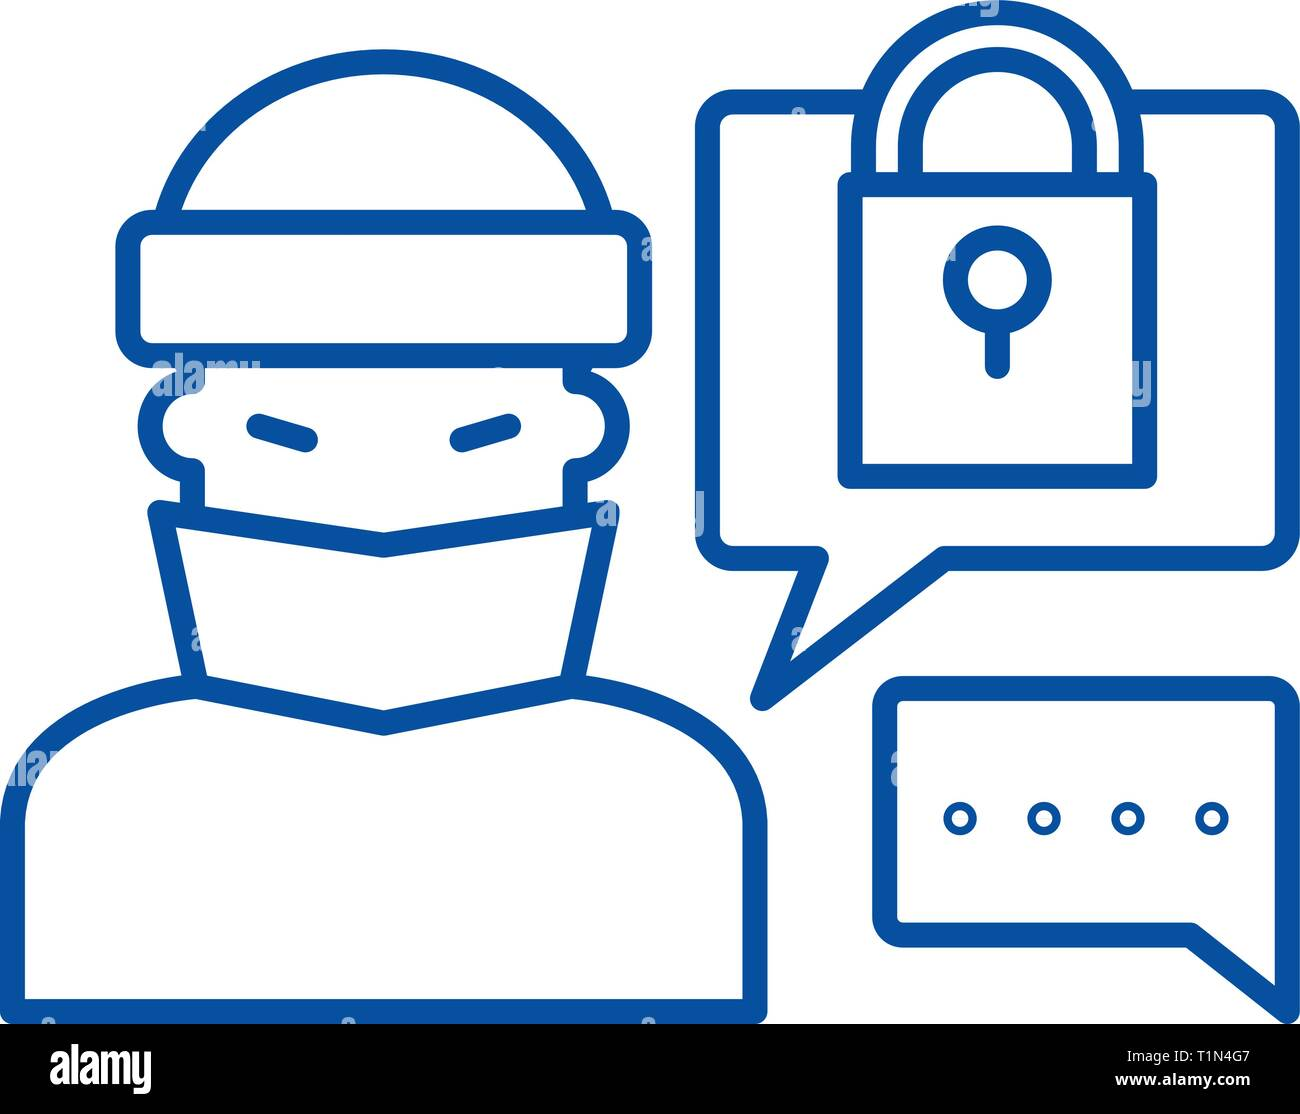 Hacking access system line icon concept. Hacking access system flat  vector symbol, sign, outline illustration. - Stock Image